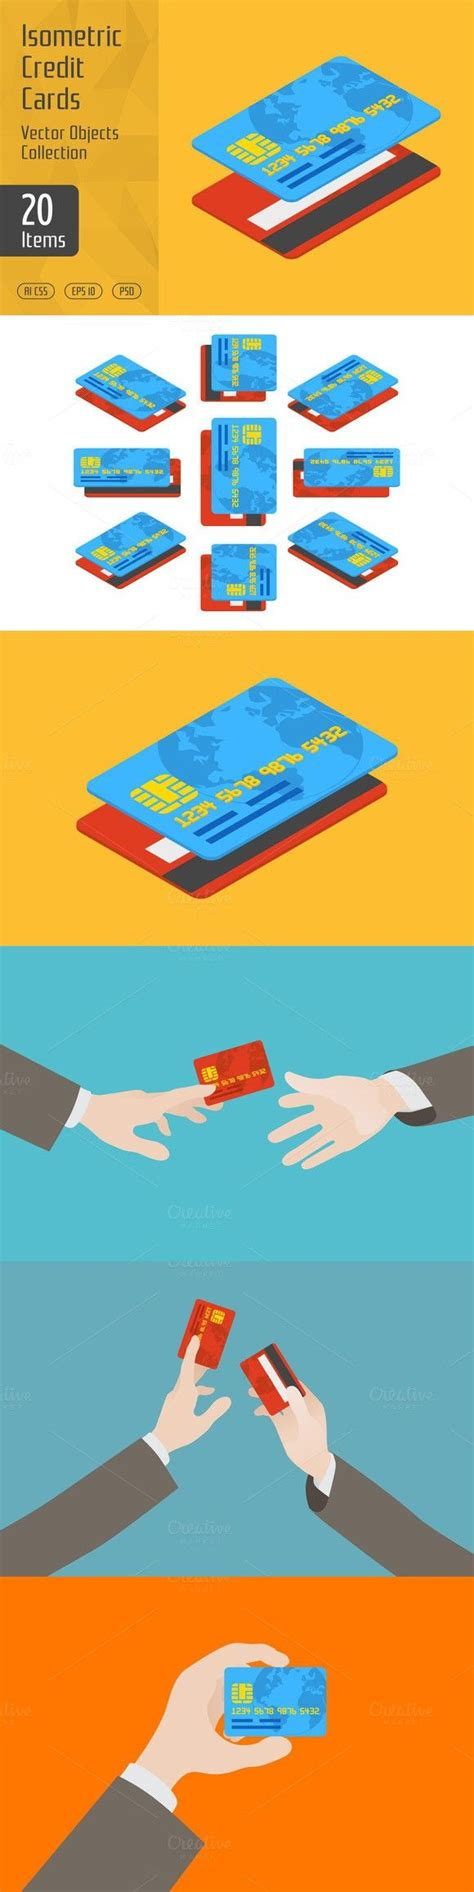 isometric credit cards business infographic